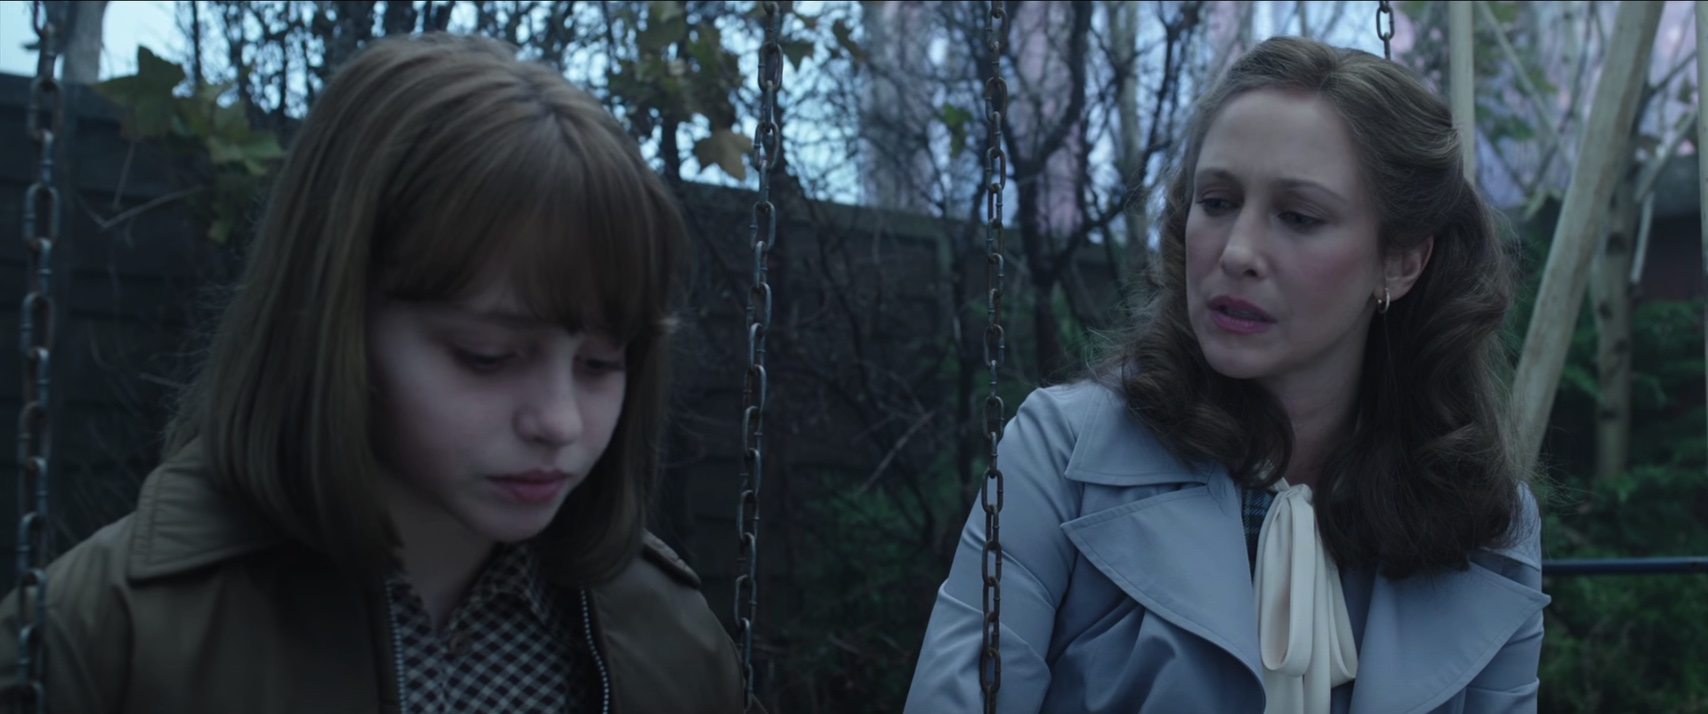 The Conjuring 2-08Janeiro2016 (7)